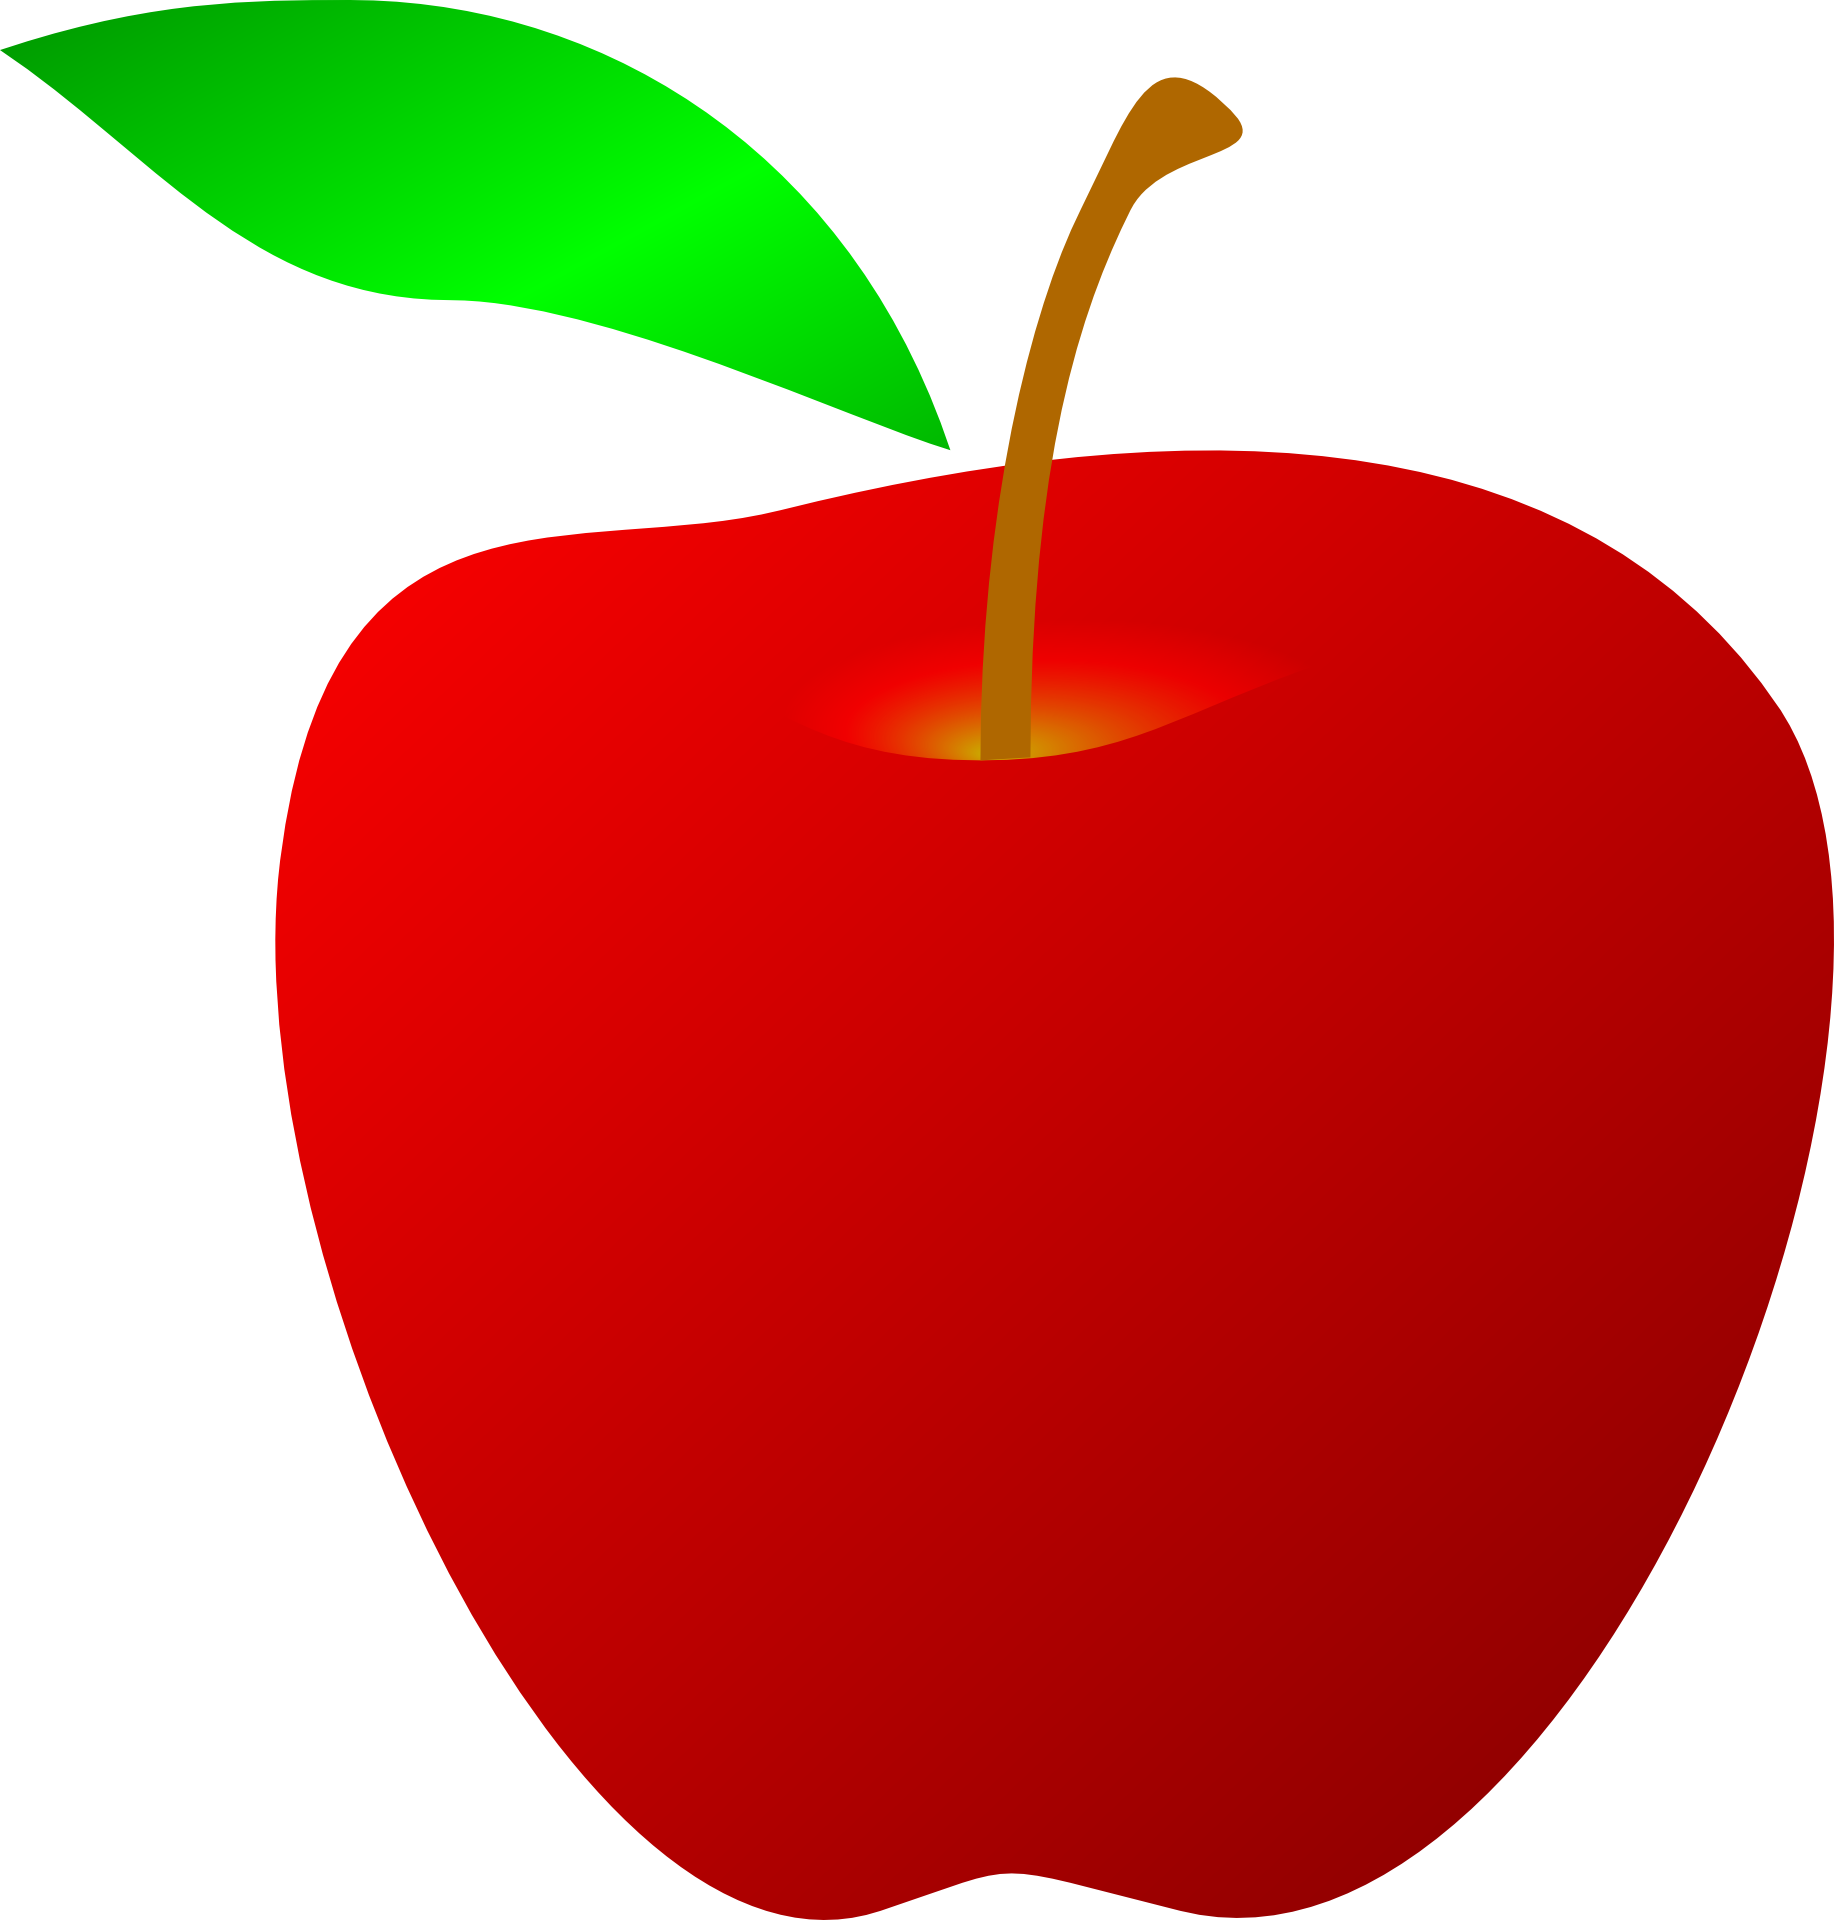 Clipart of leaf and stem of apple clip art library download Drawing of red apple with green leaf free image clip art library download